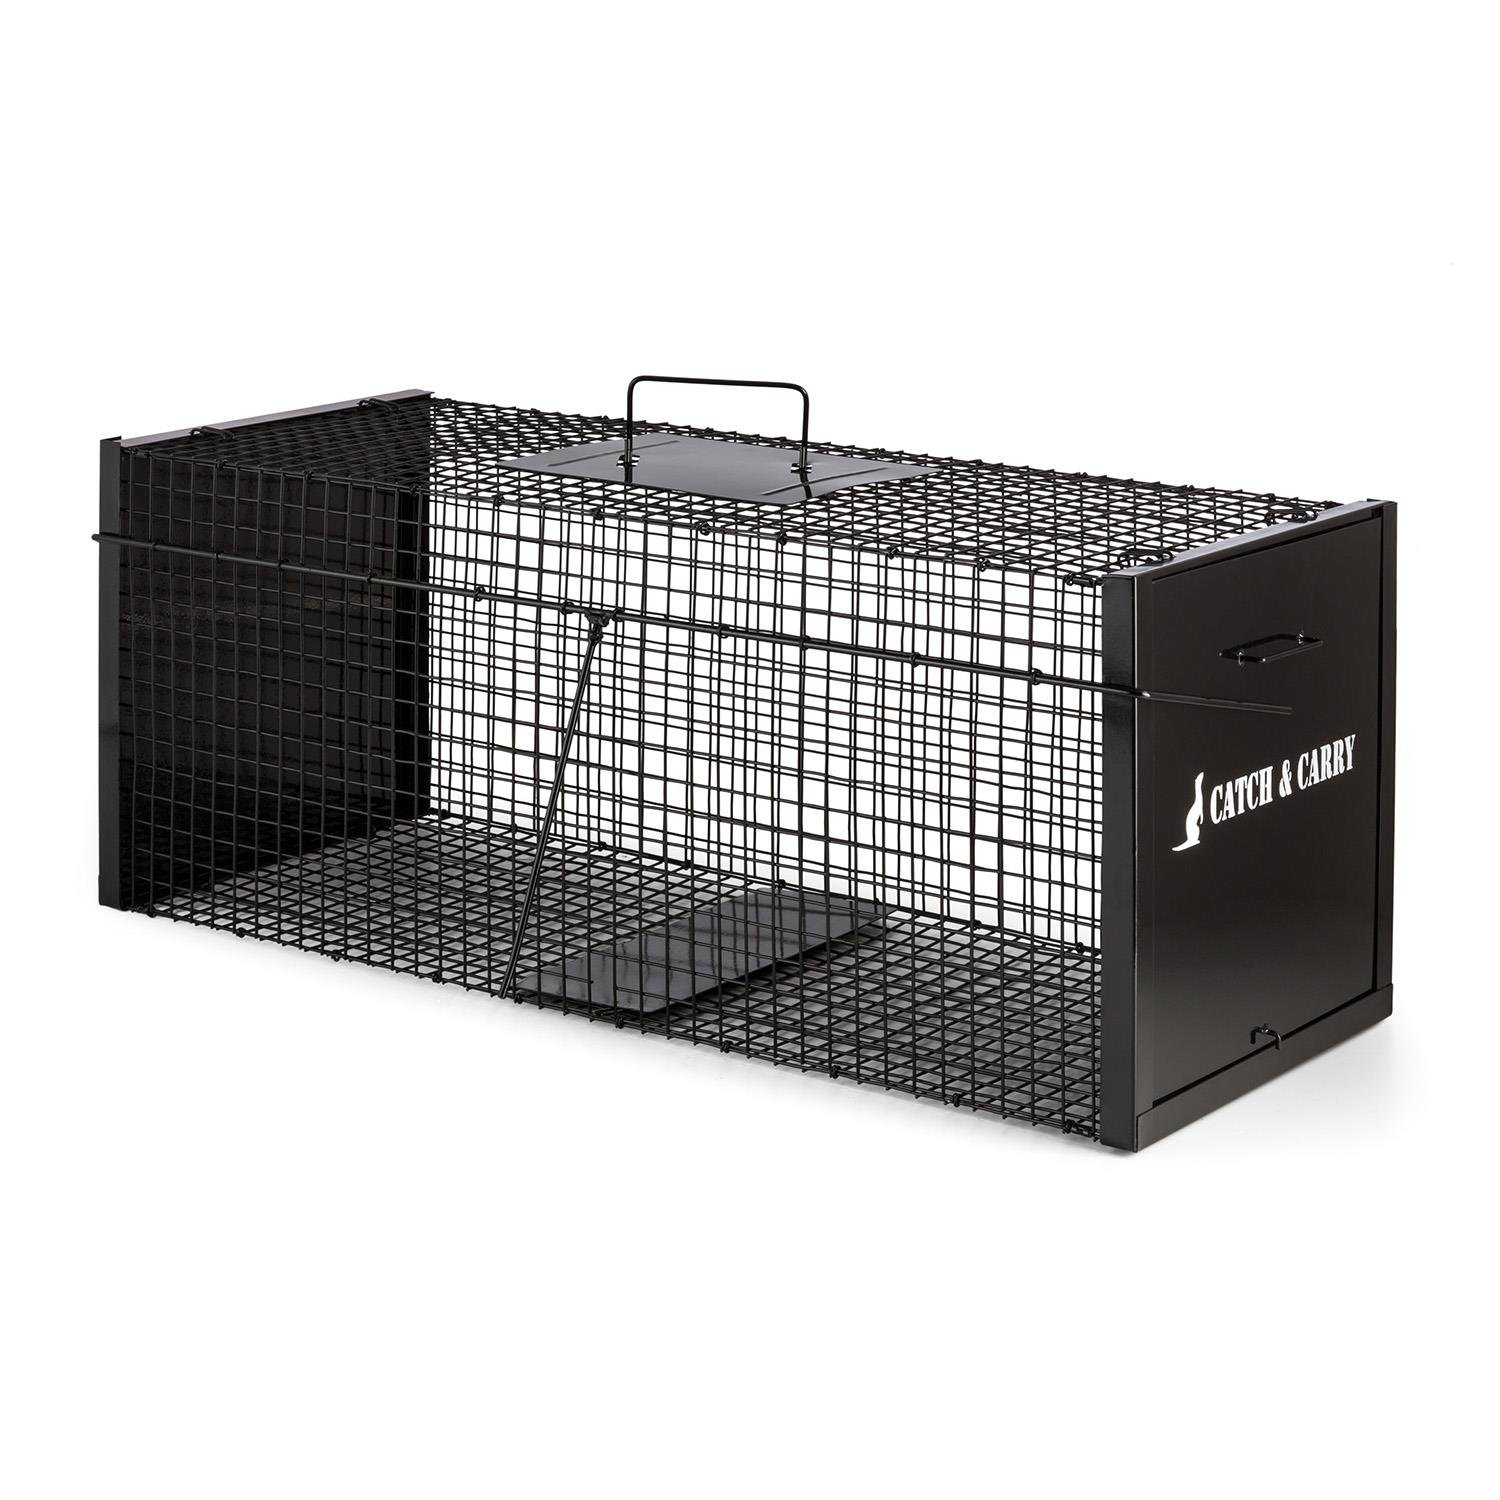 Oneconcept Catch & Carry L Trampa para Animales 31x31x78cm (Jaula Acero 2mm Negro, Captura Animal Vivo, asa Transporte Seguro, Ideal Ratas, Ratones, Zorros, ...